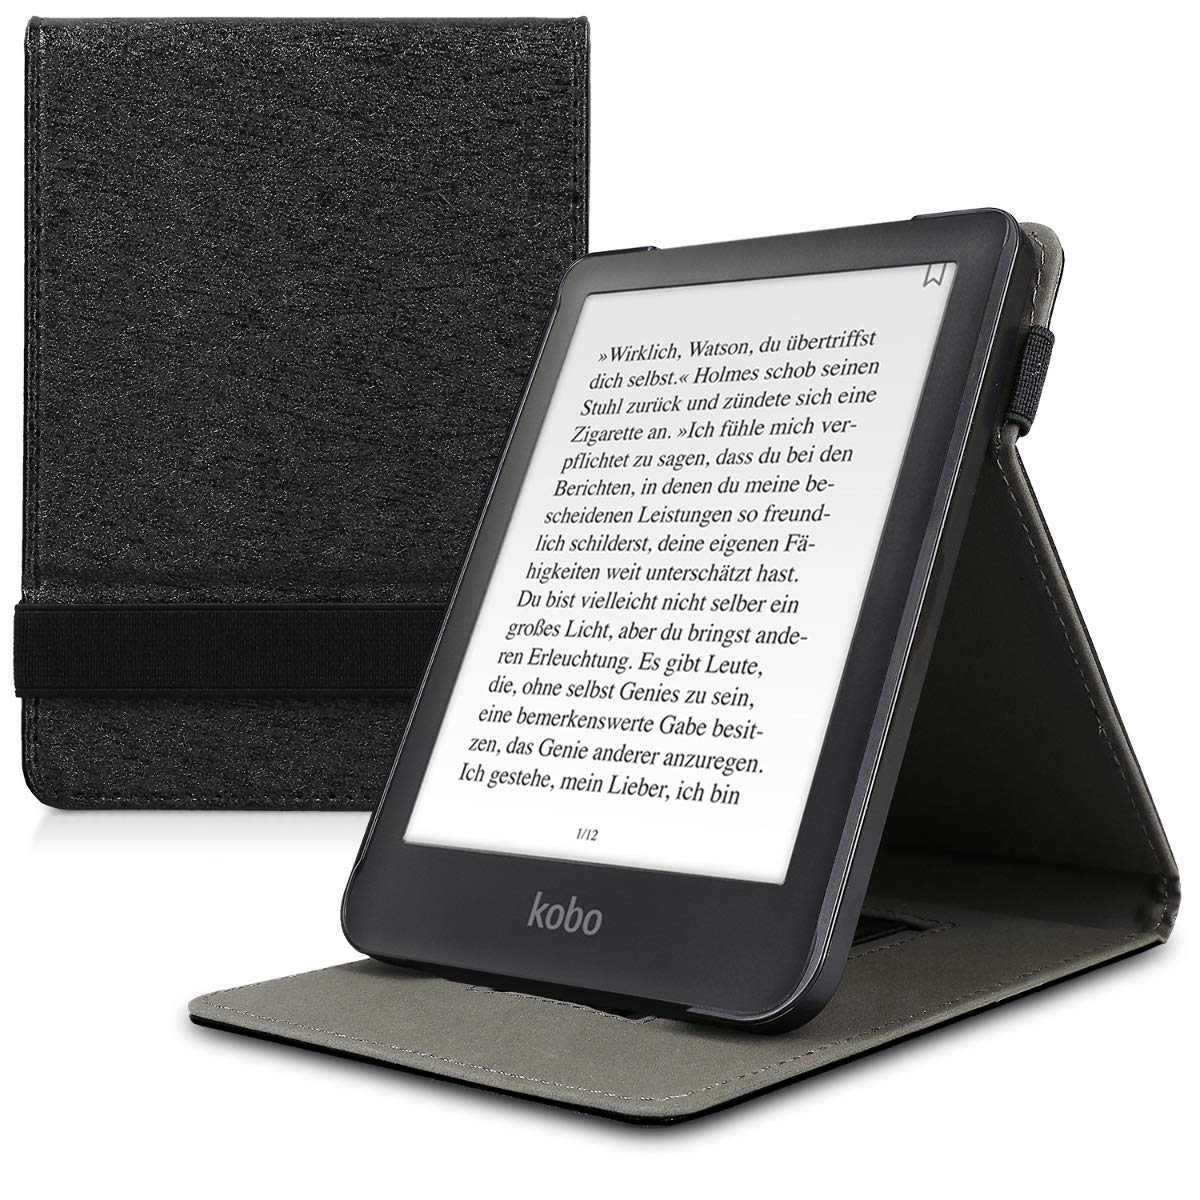 kwmobile Cover for Kobo Clara HD - PU Leather e-Reader Case with Built-in Hand Strap and Stand - Black KW-Commerce 46214.01_m001201